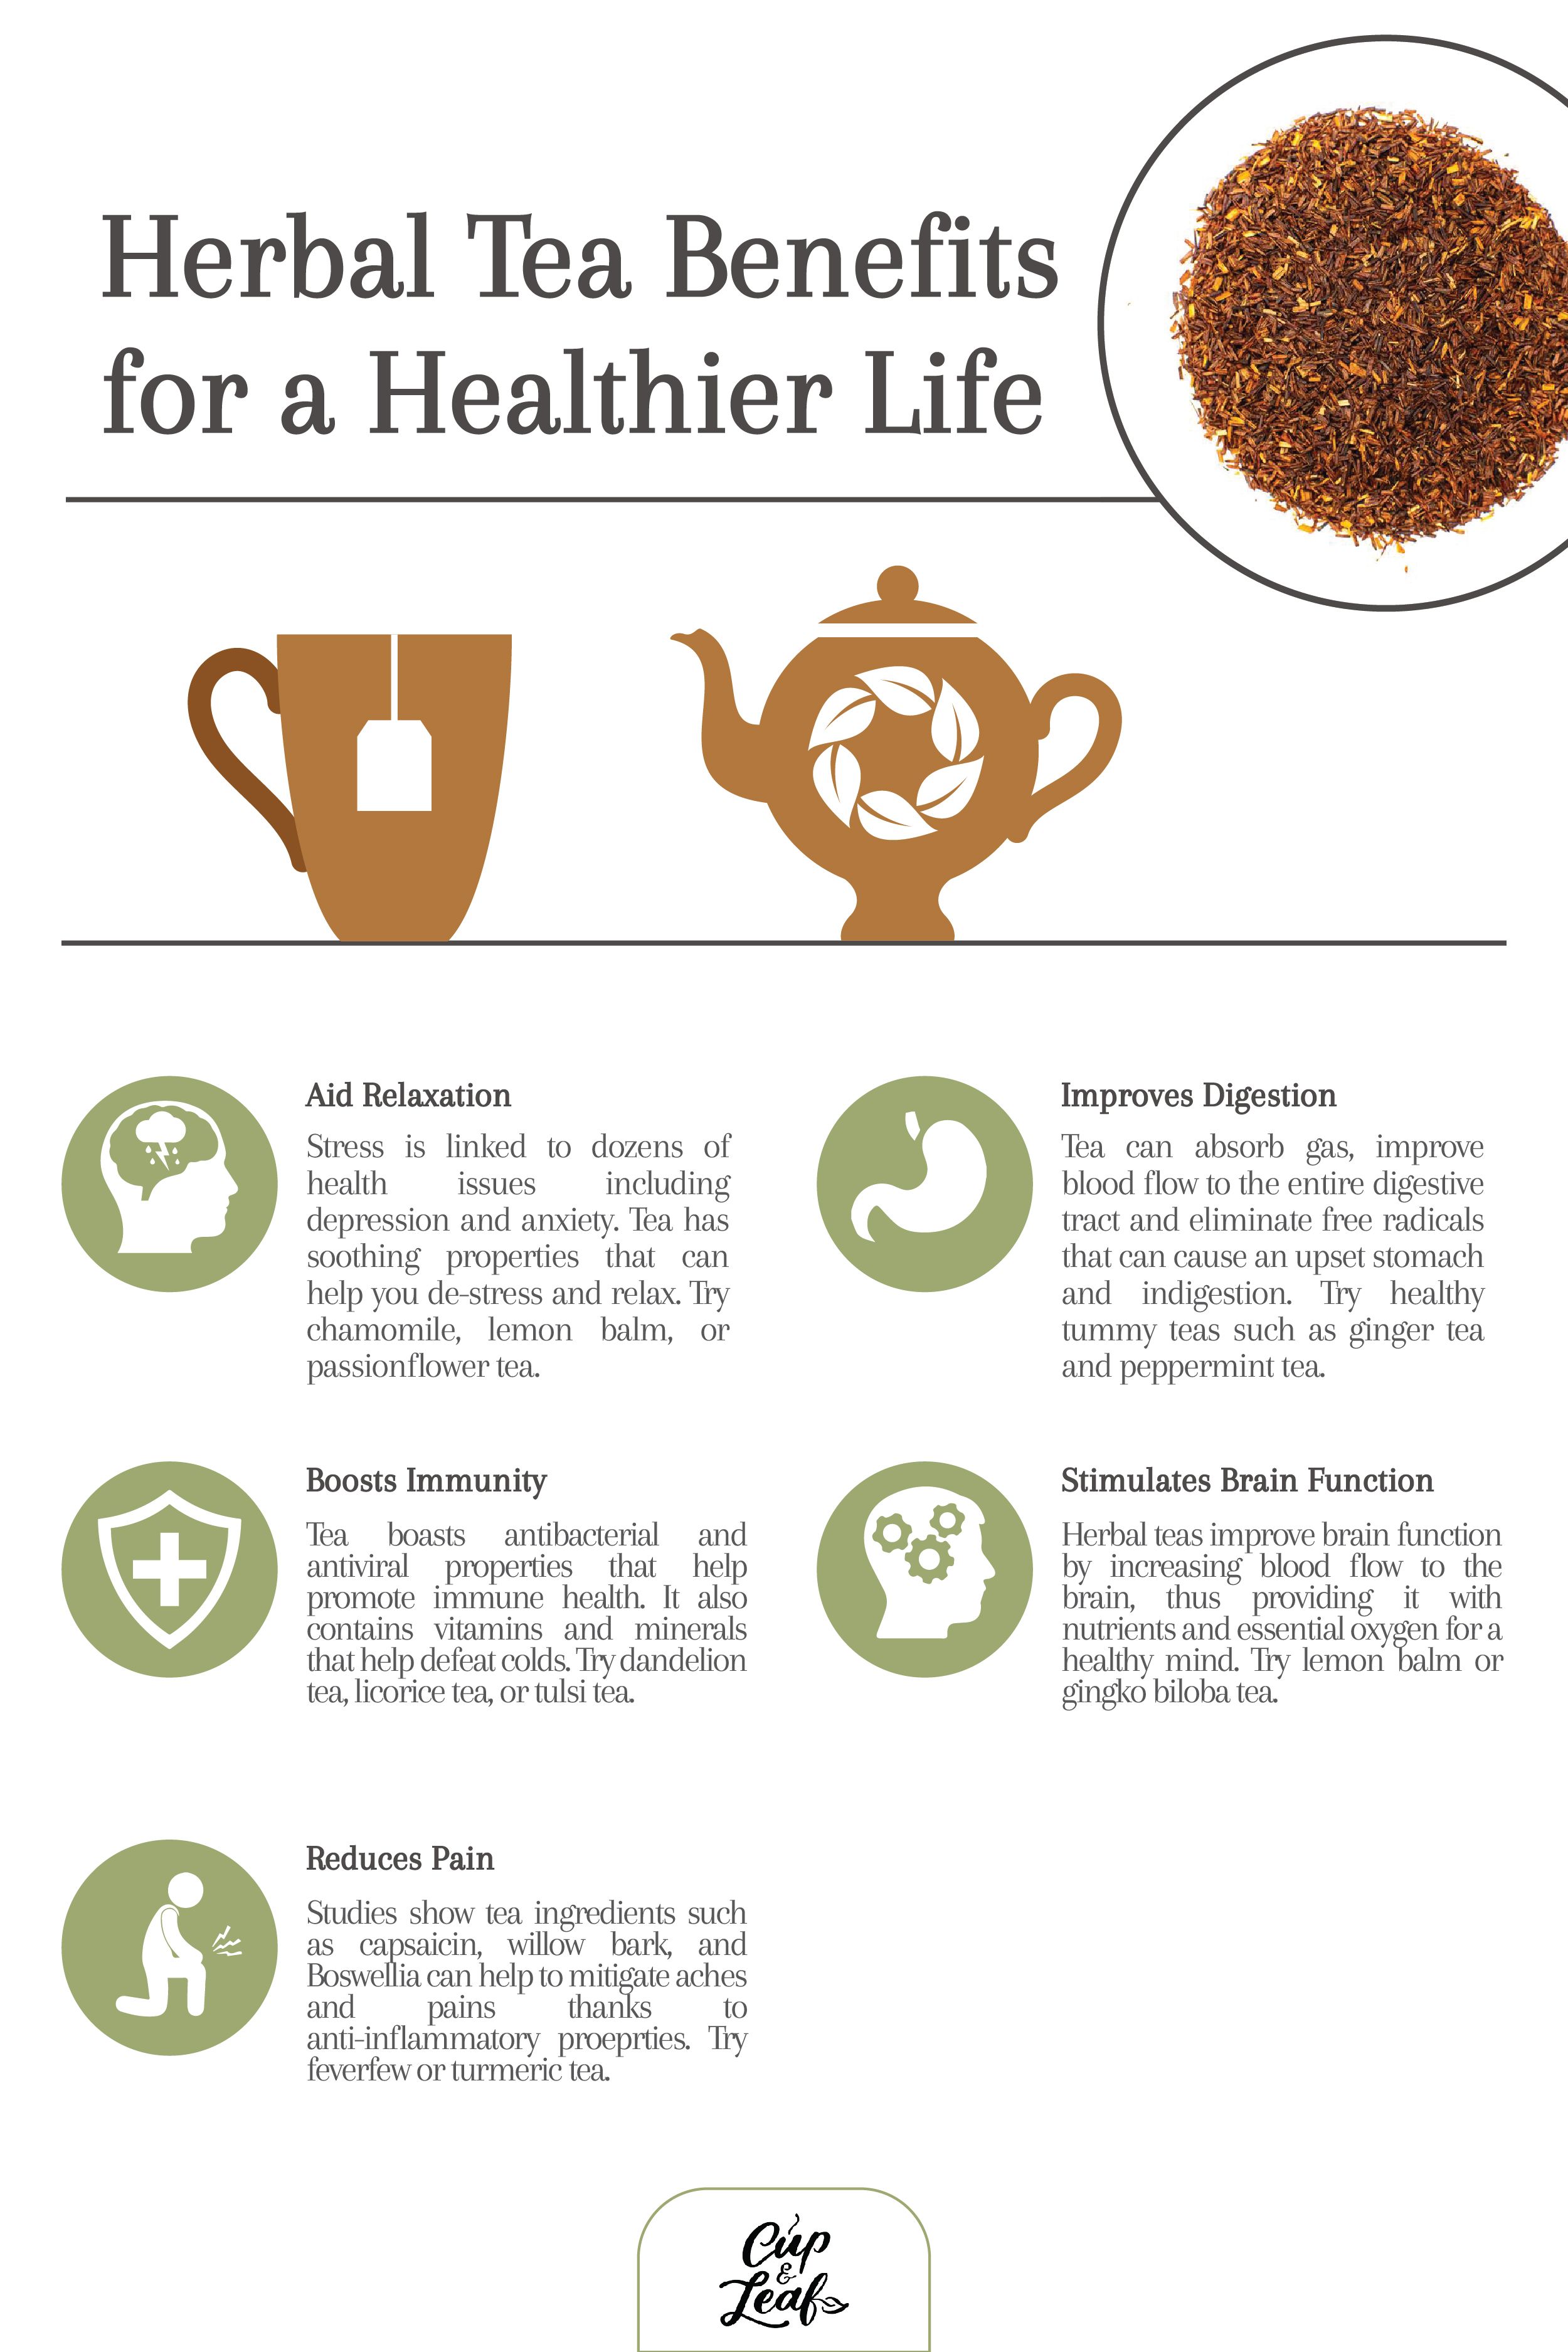 7 Herbal Tea Benefits for a Healthier Life - Cup & Leaf